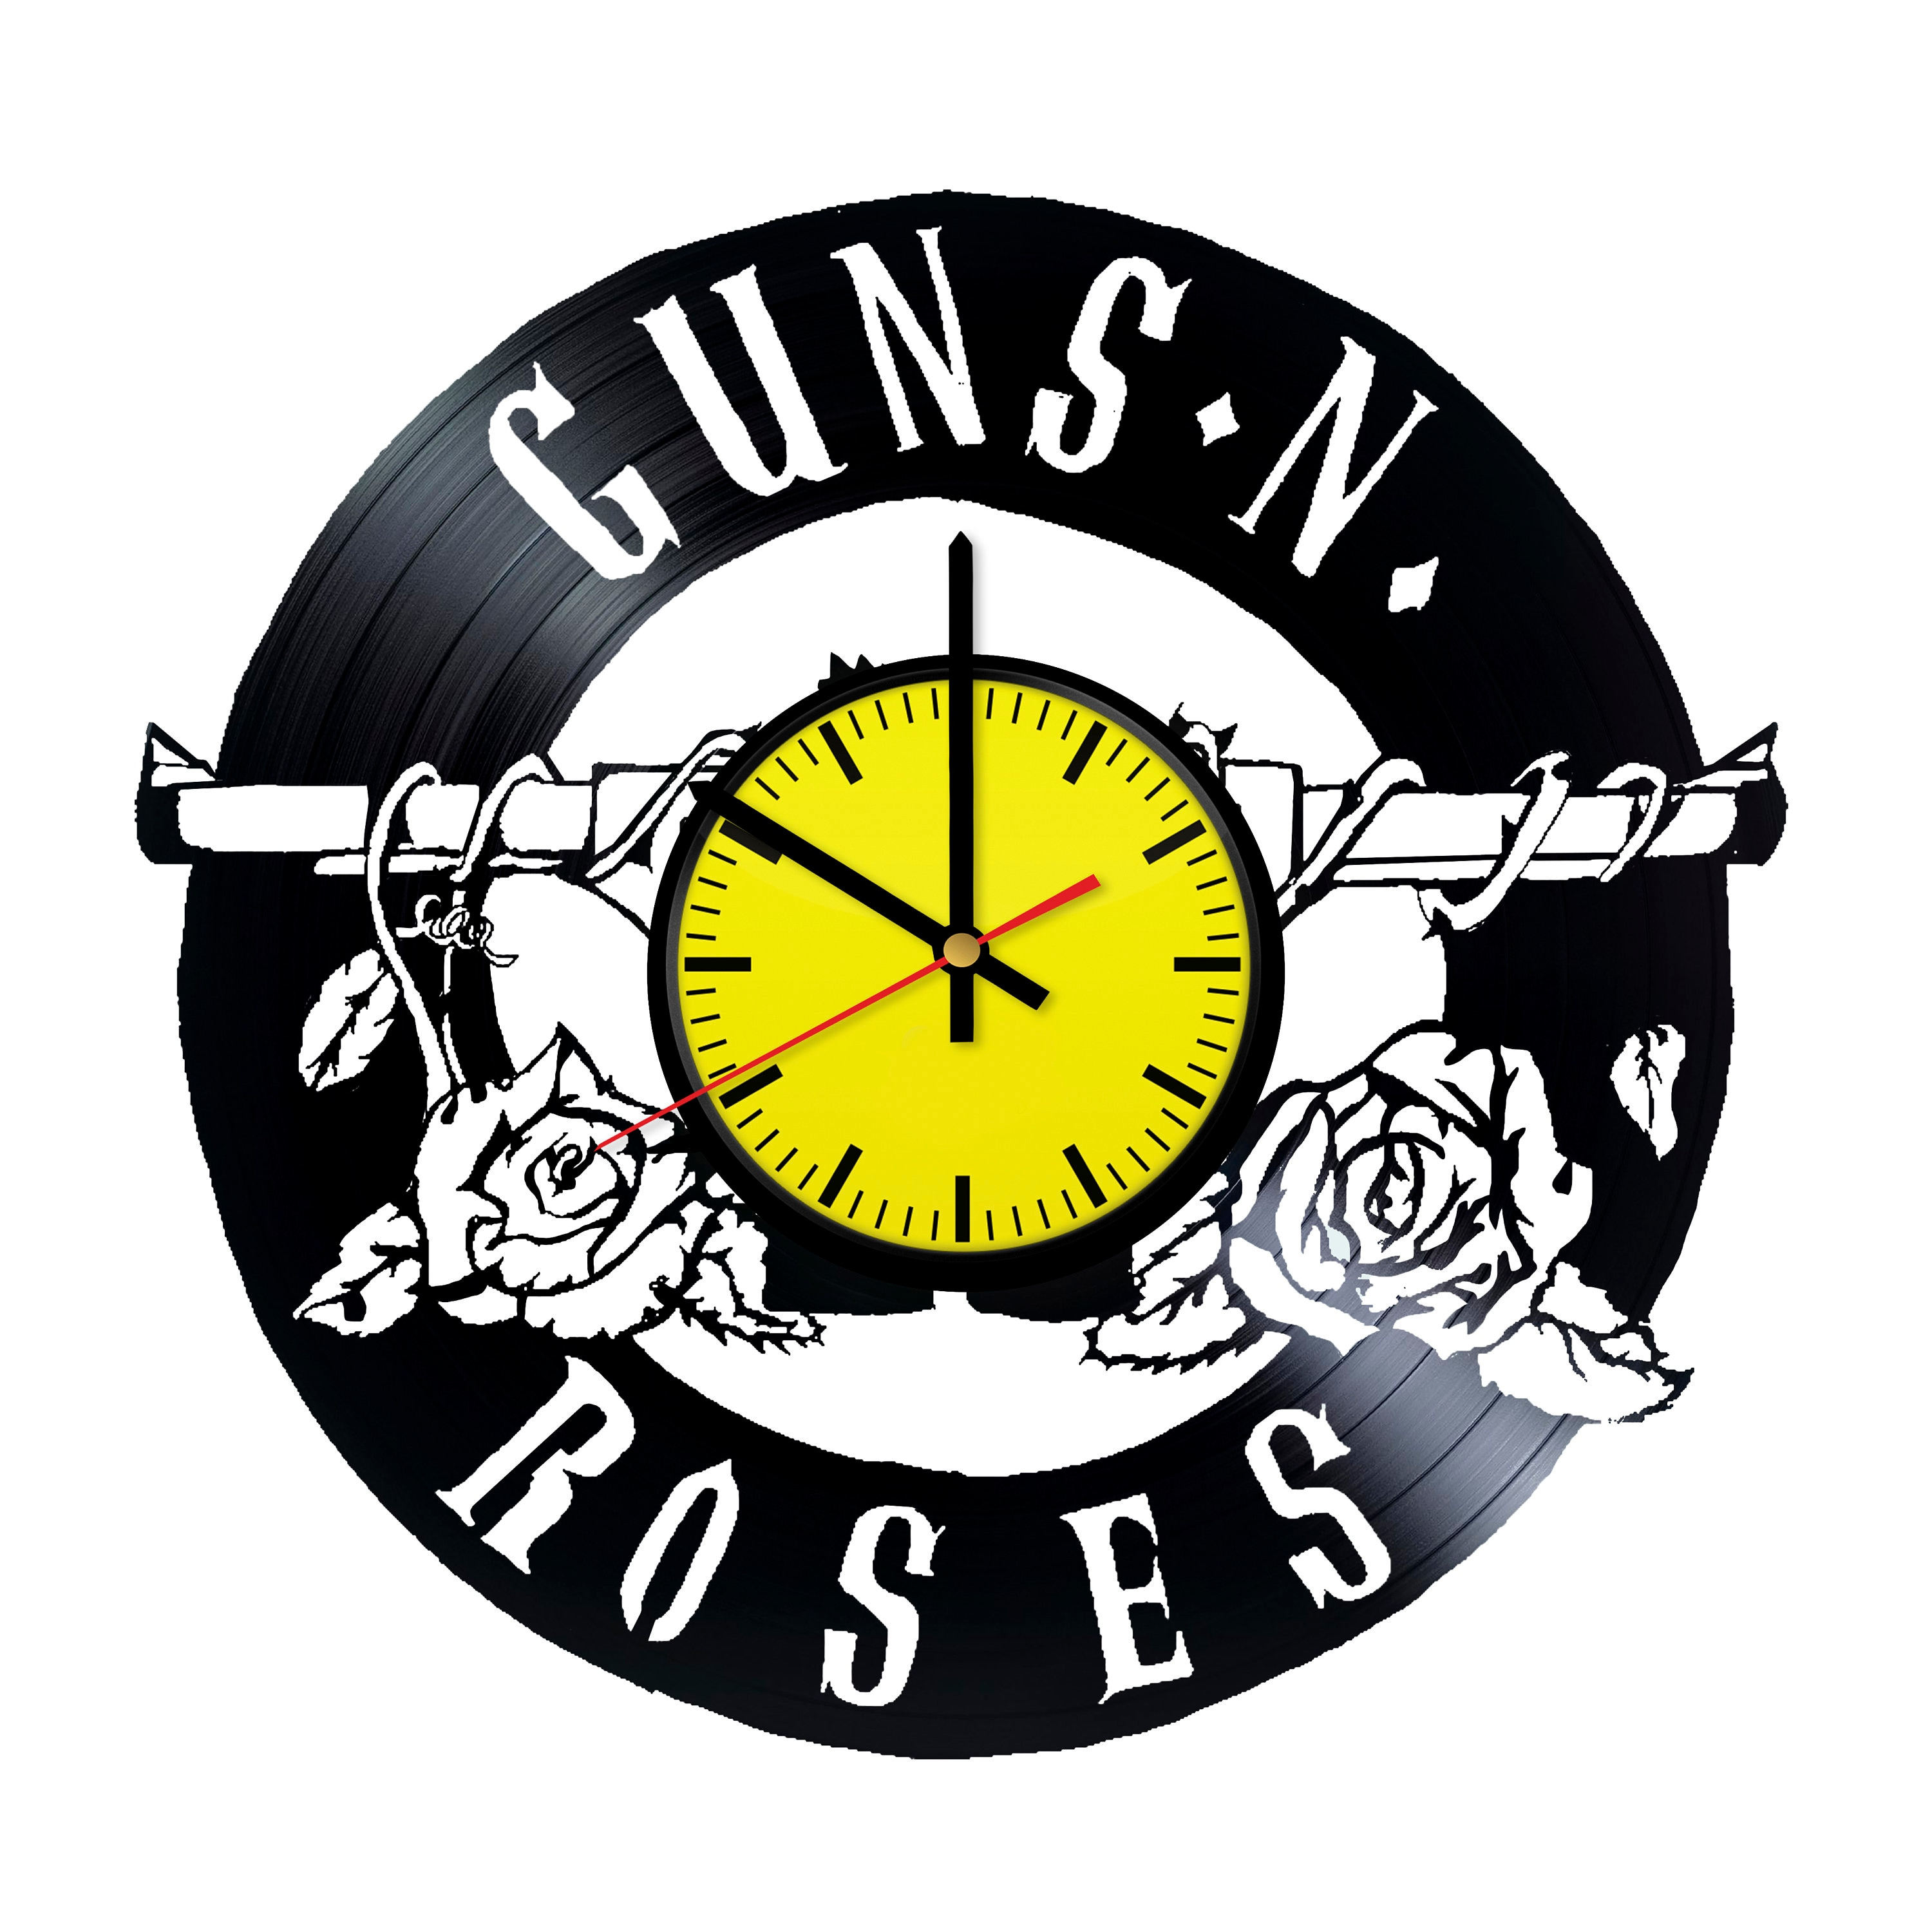 Guns N\' Roses Music Band Handmade Vinyl Record Wall Clock | Etsy